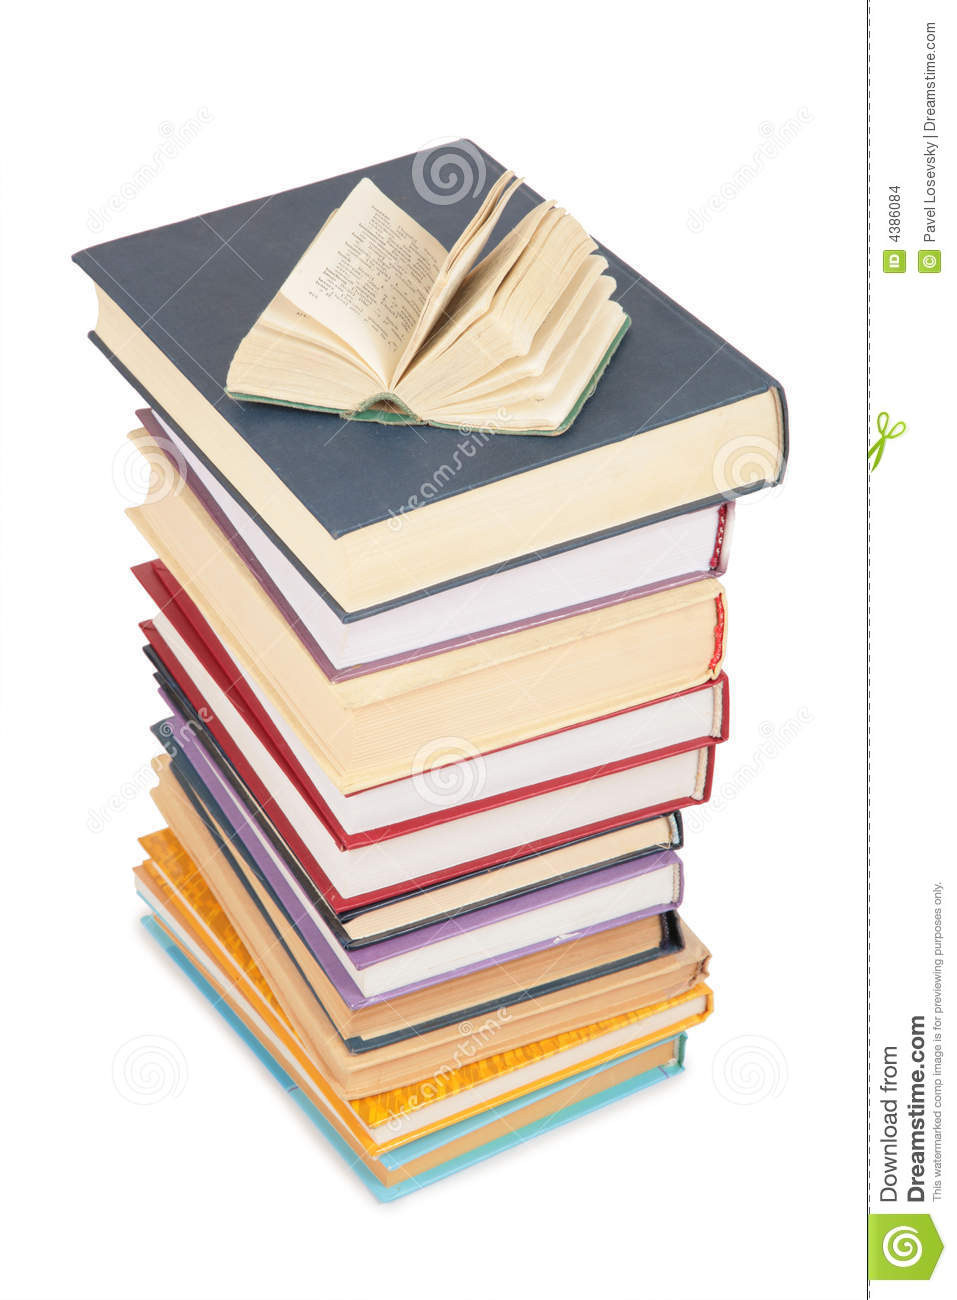 books stack opened